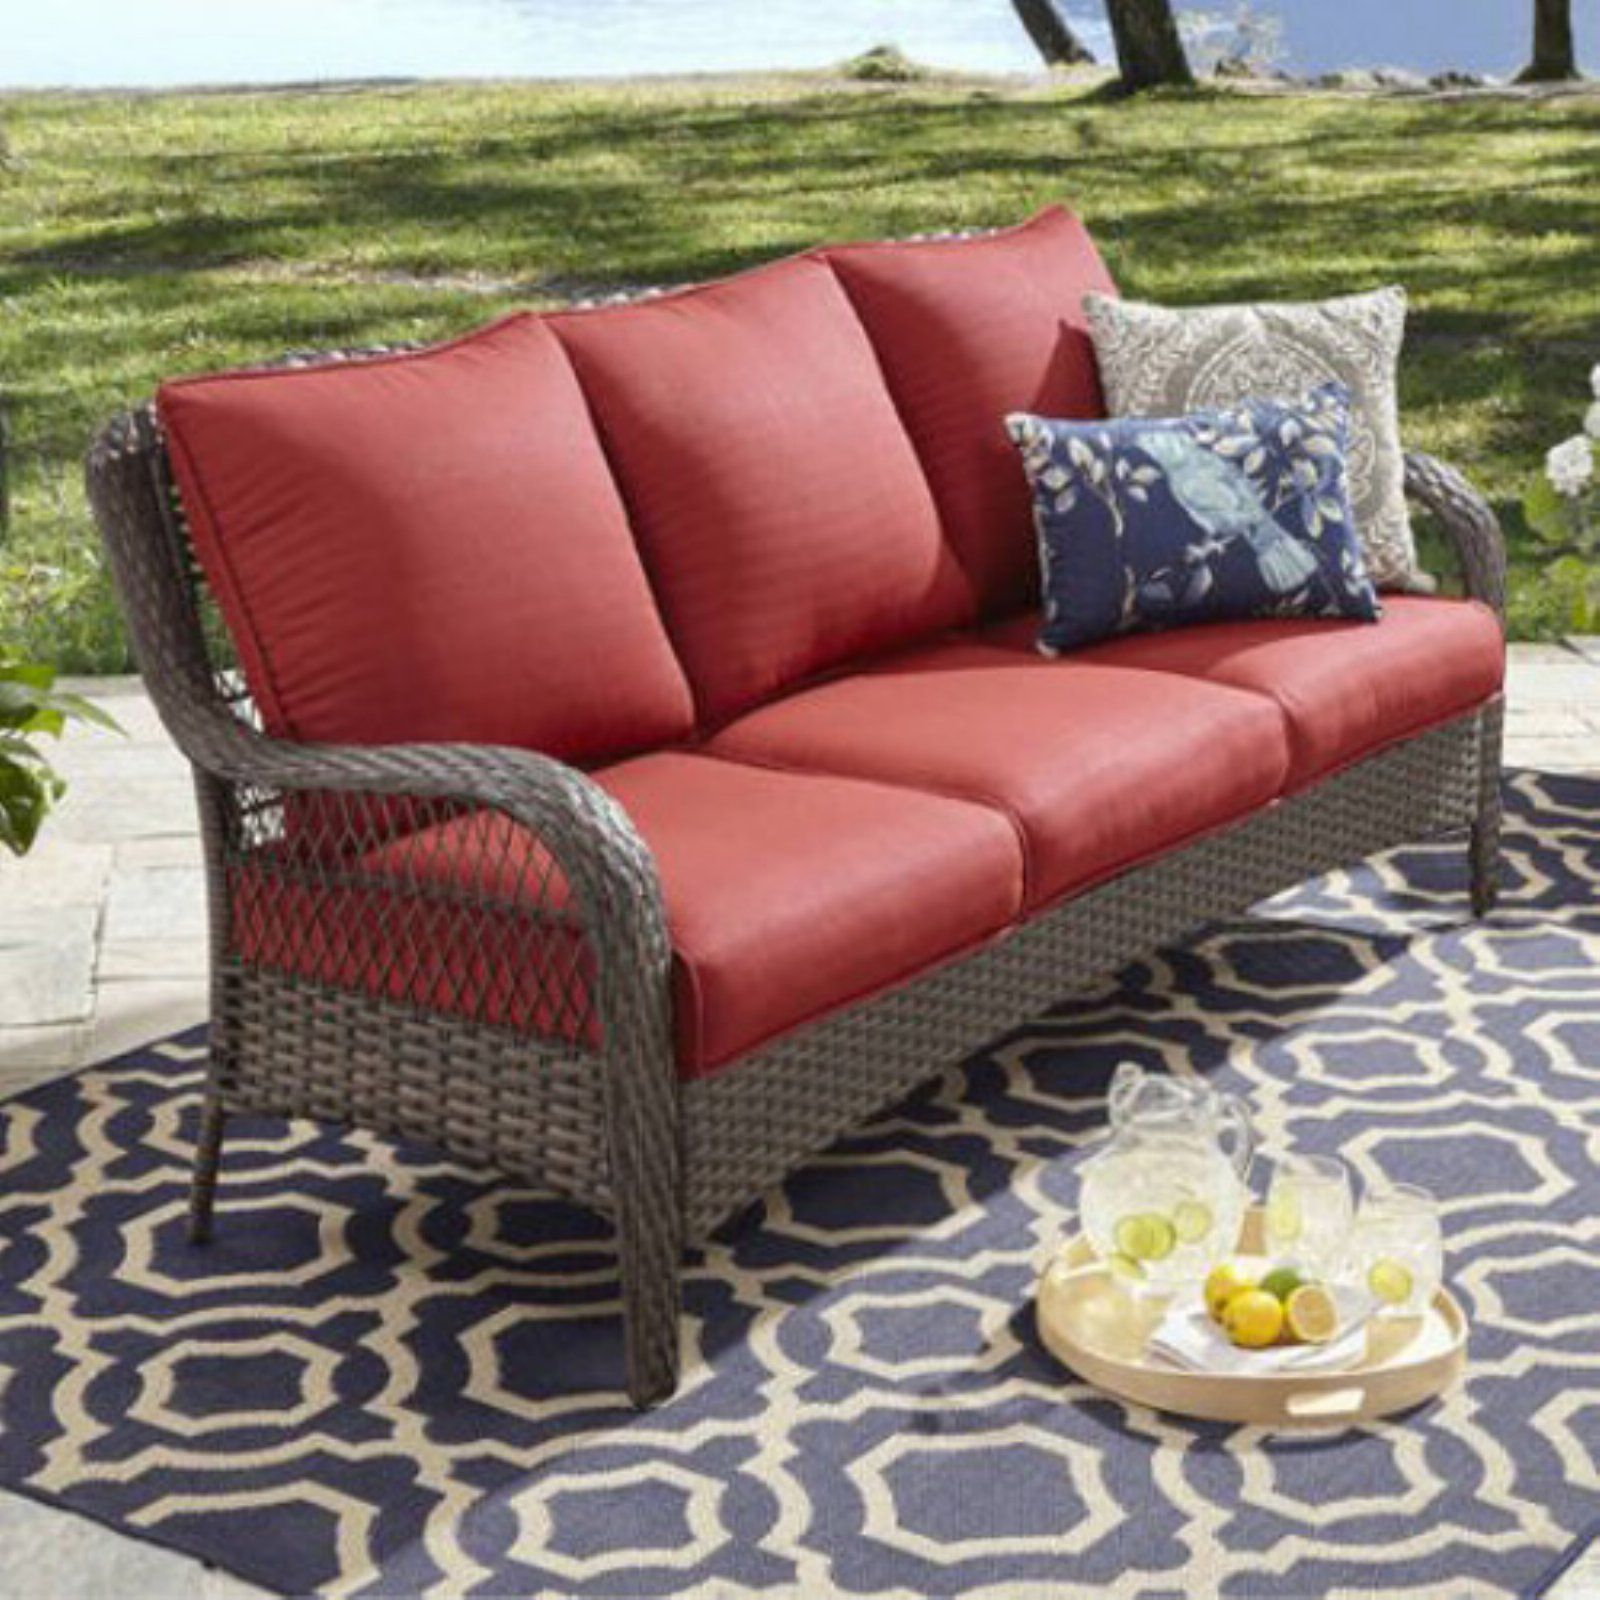 Marvelous Better Homes Gardens Colebrook Outdoor Sofa Red Products Pdpeps Interior Chair Design Pdpepsorg